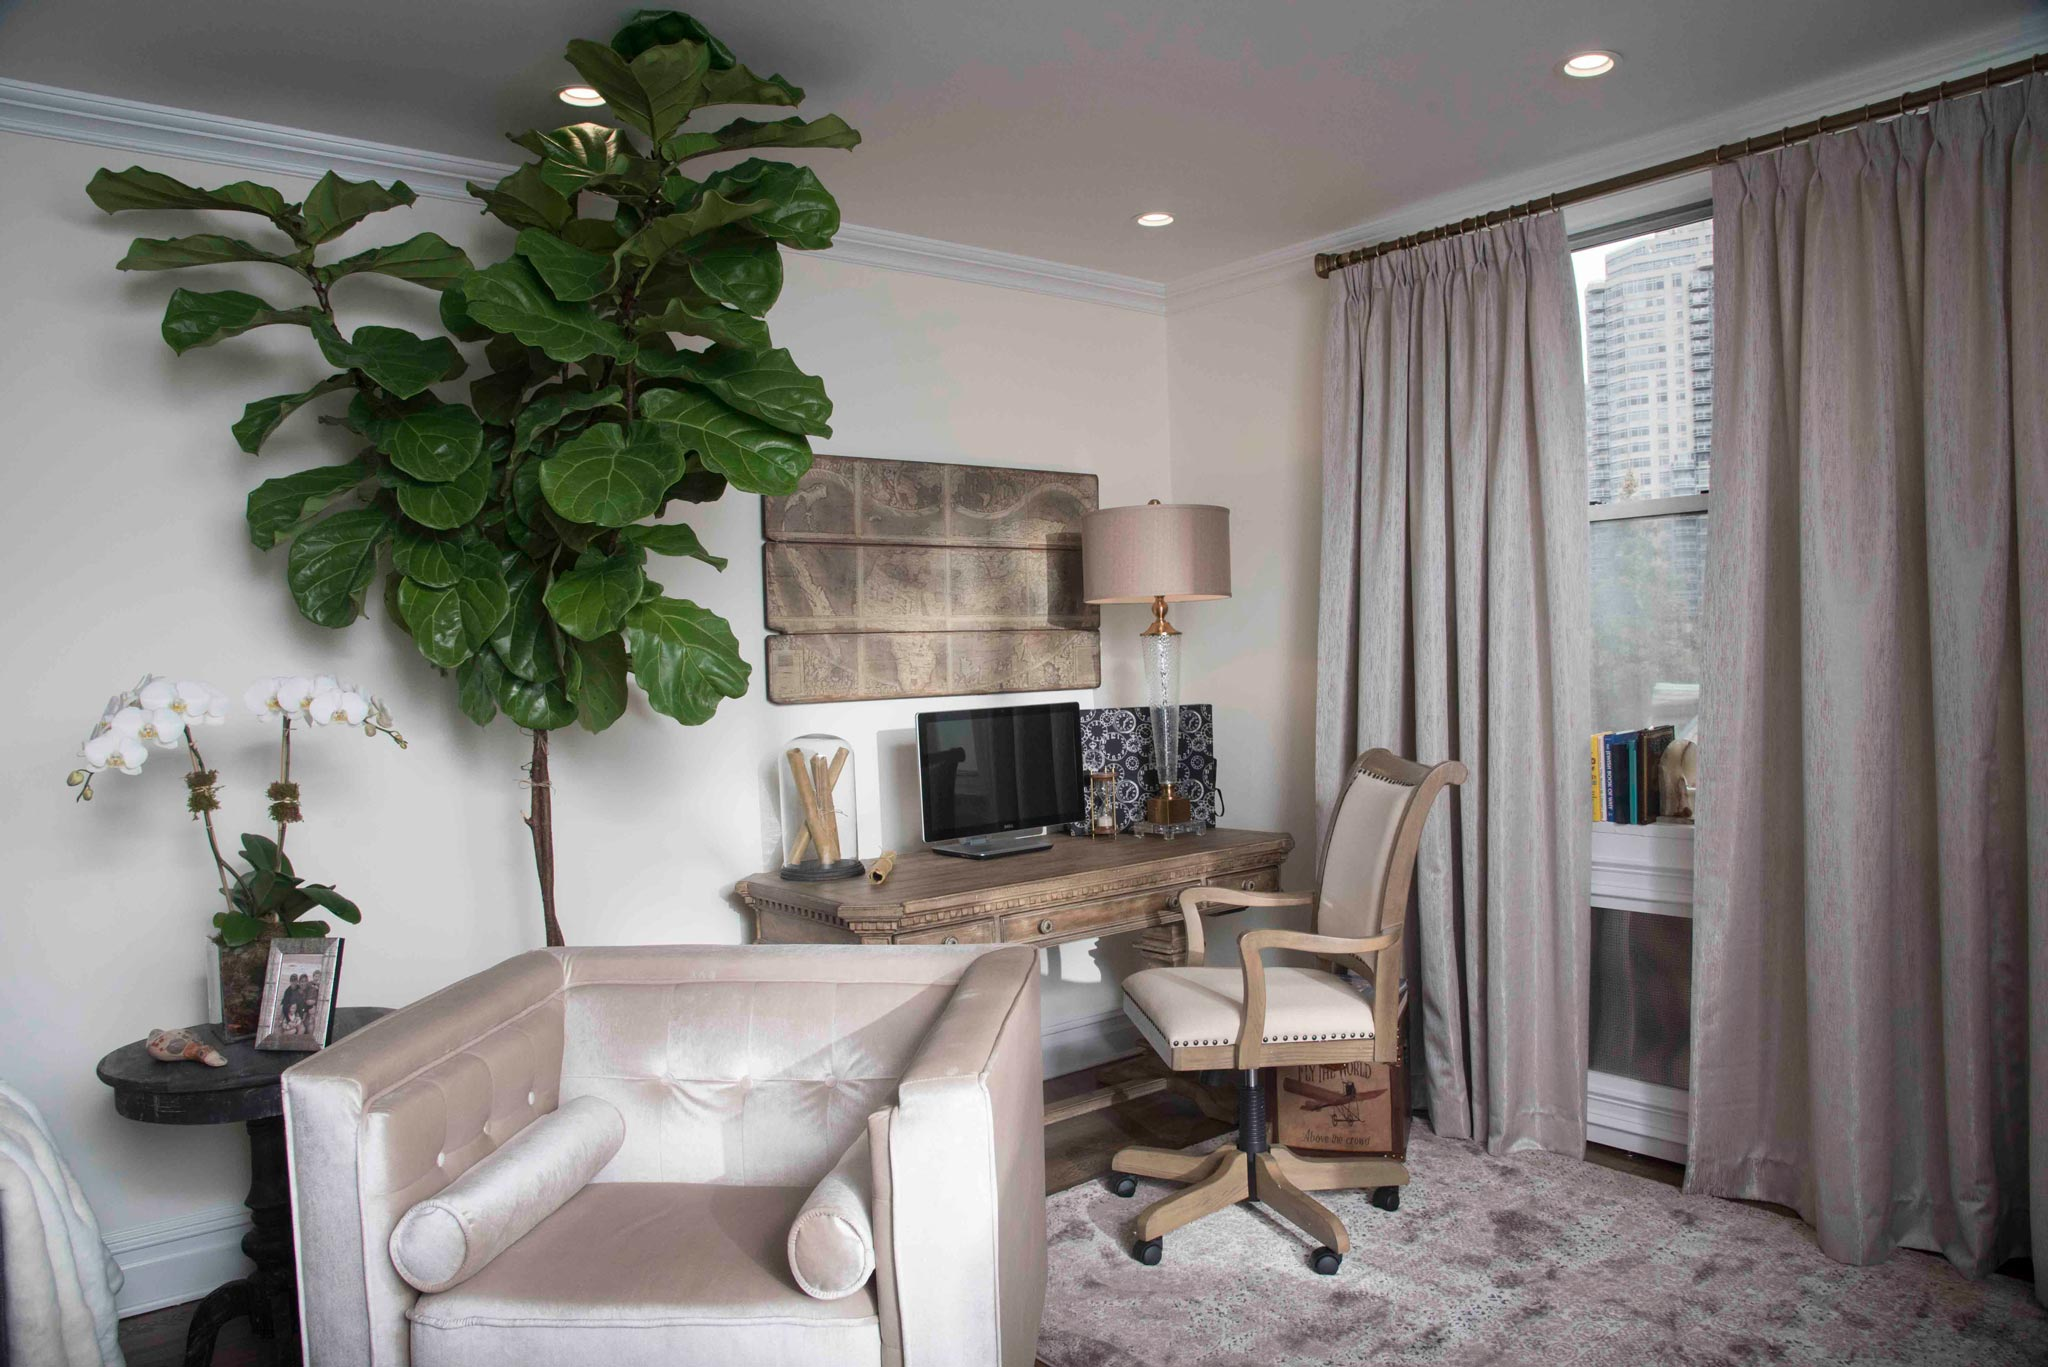 gallery image of interior design project at the Upper East apartment by Anastasios Interiors